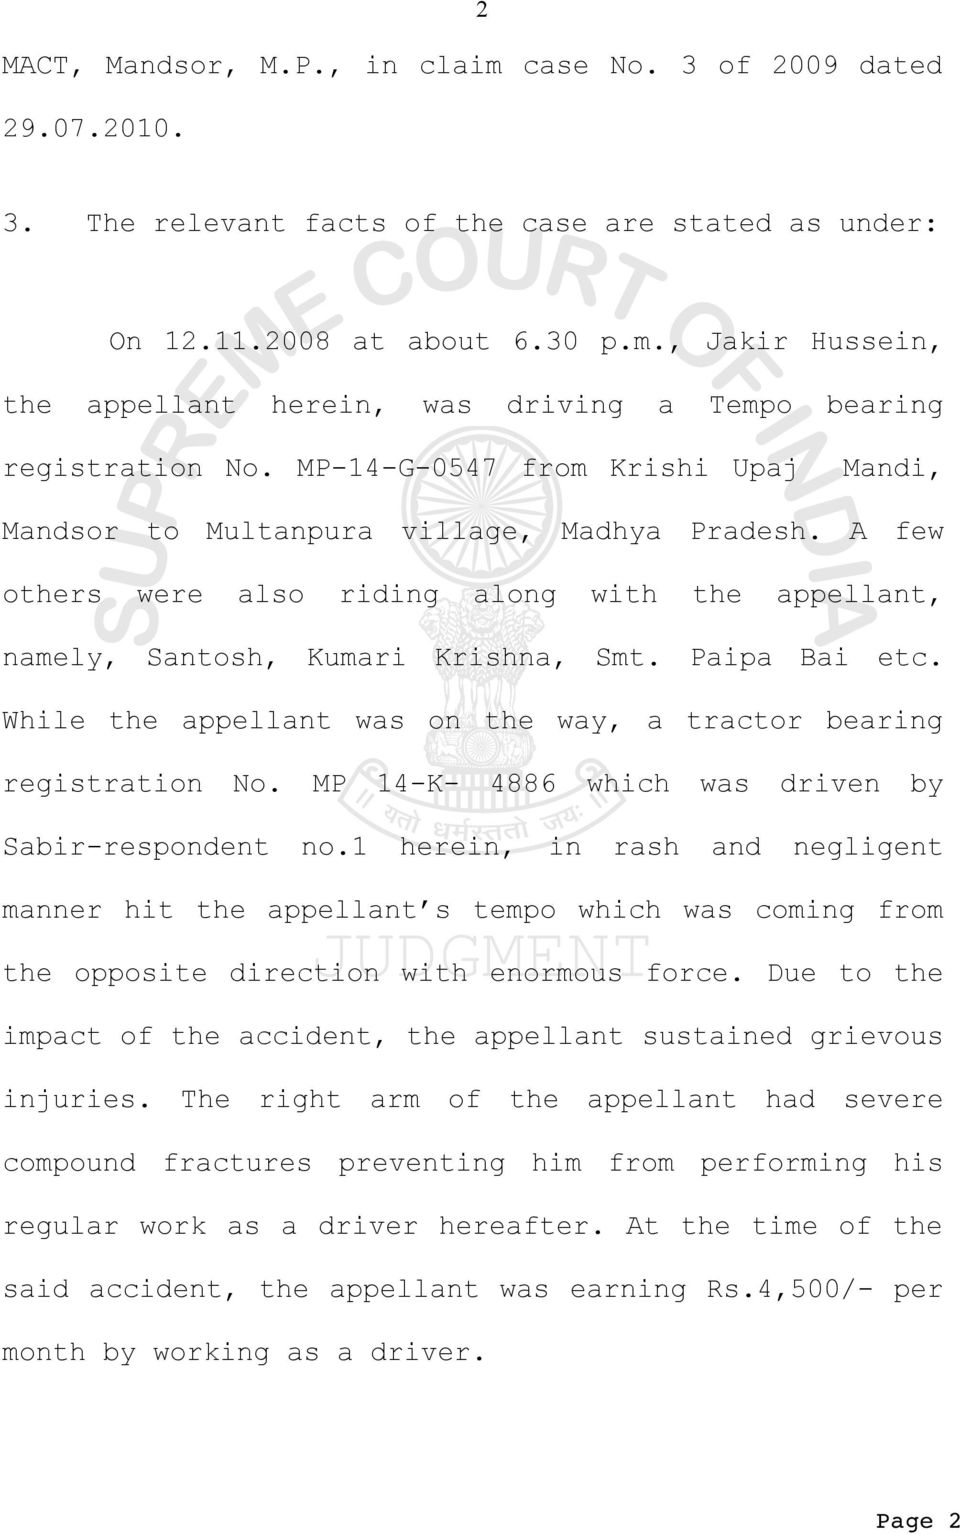 While the appellant was on the way, a tractor bearing registration No. MP 14-K- 4886 which was driven by Sabir-respondent no.